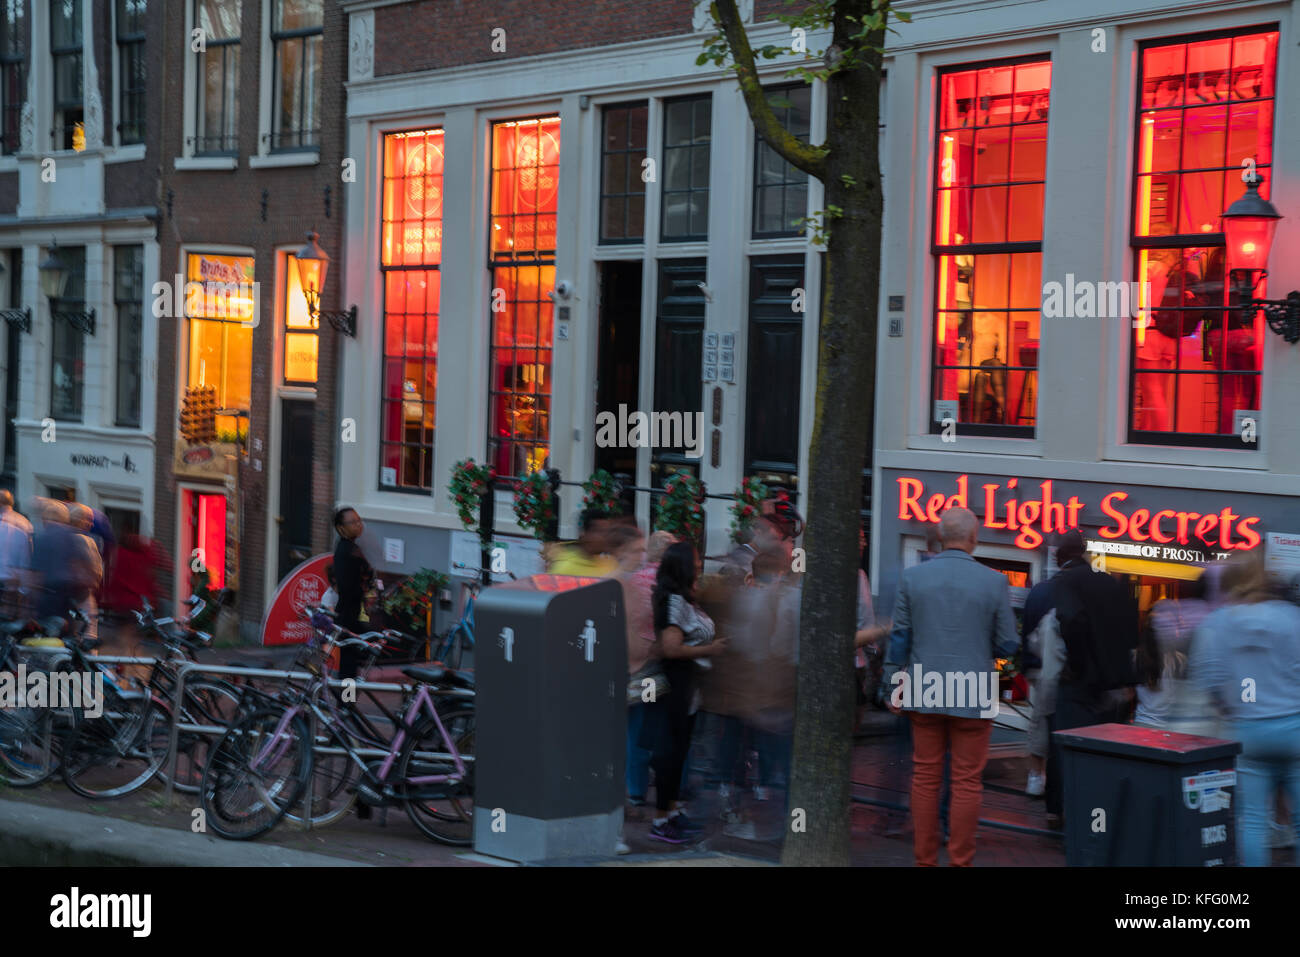 AMSTERDAM, HOLLAND - AUGUST 17, 2017;  People and night lights along canal in red light district outside Red Light - Stock Image